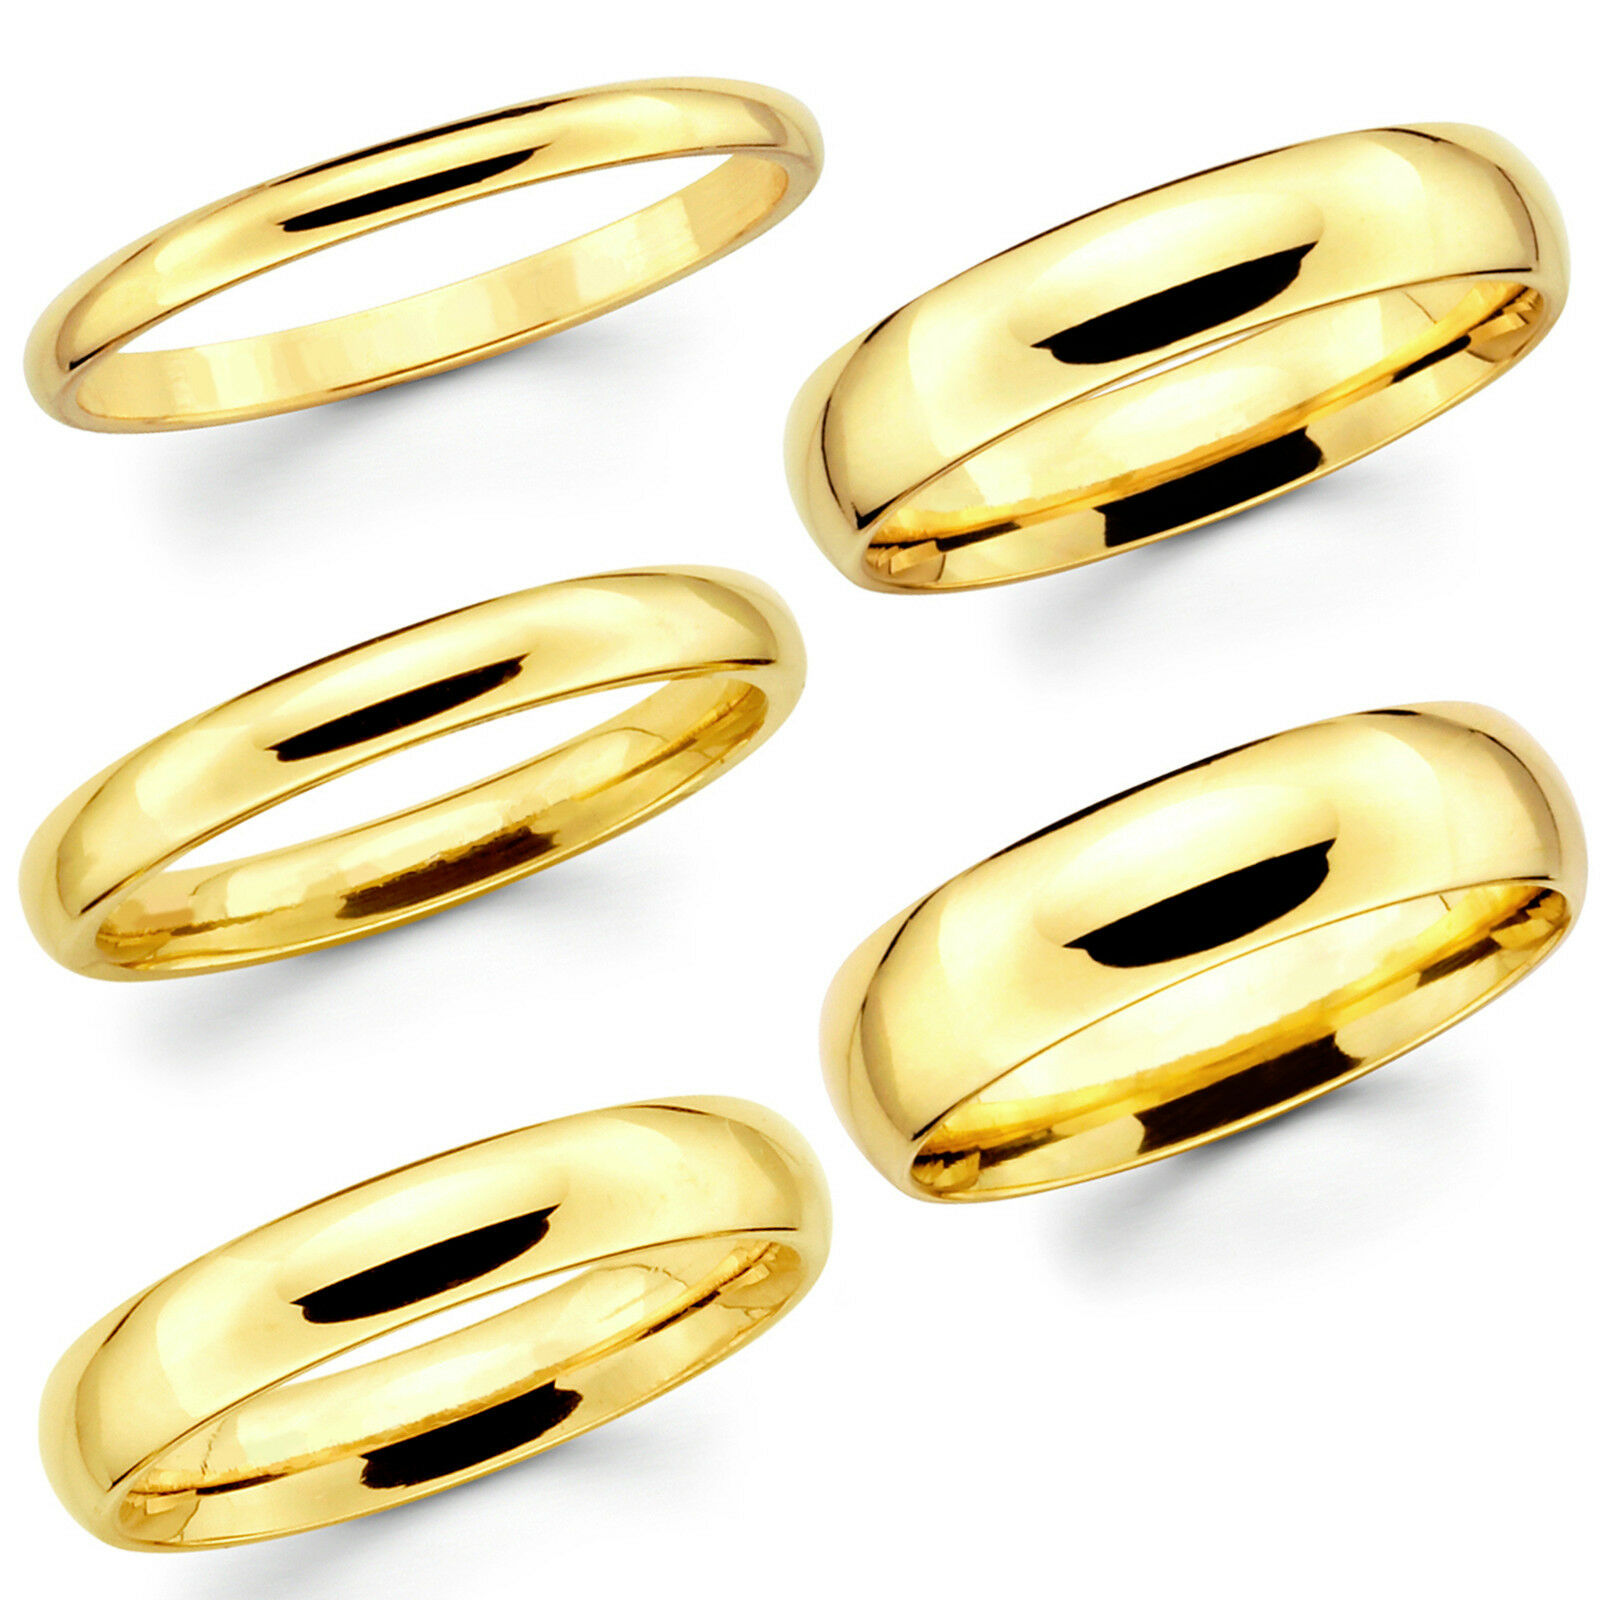 This is a photo of Solid 300K Yellow Gold 300mm 30mm 30mm 30mm 30mm Comfort Fit MenWomen Wedding Band Ring